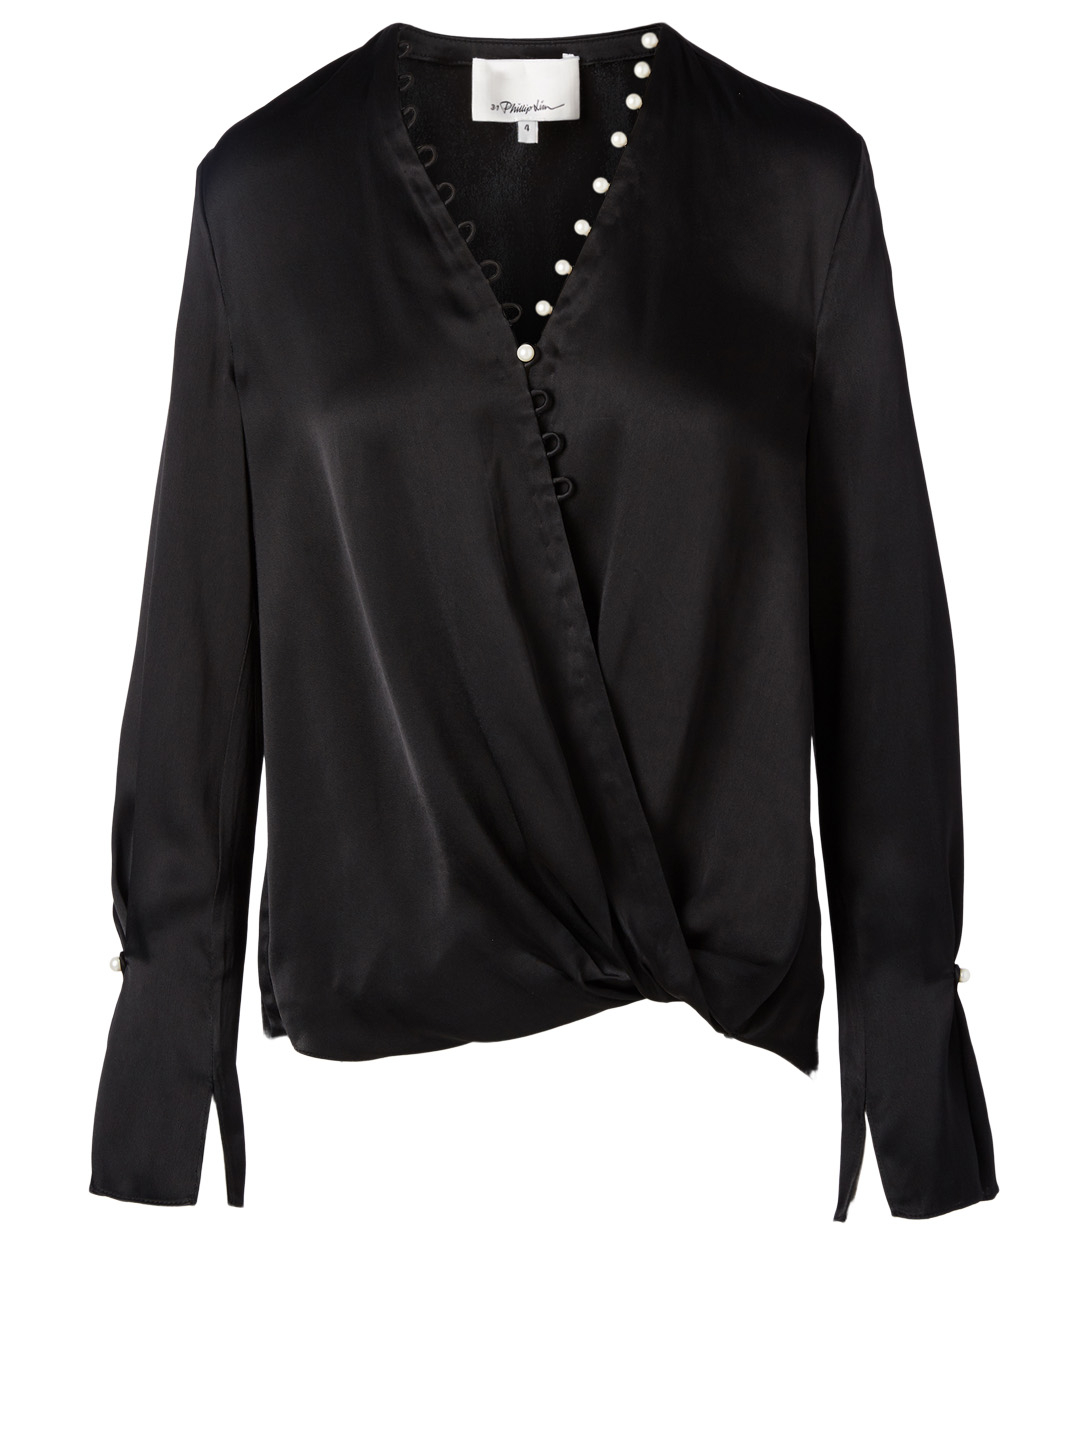 a69480e17dcff4 3.1 PHILLIP LIM Pearl Embellished Blouse Women's Black ...